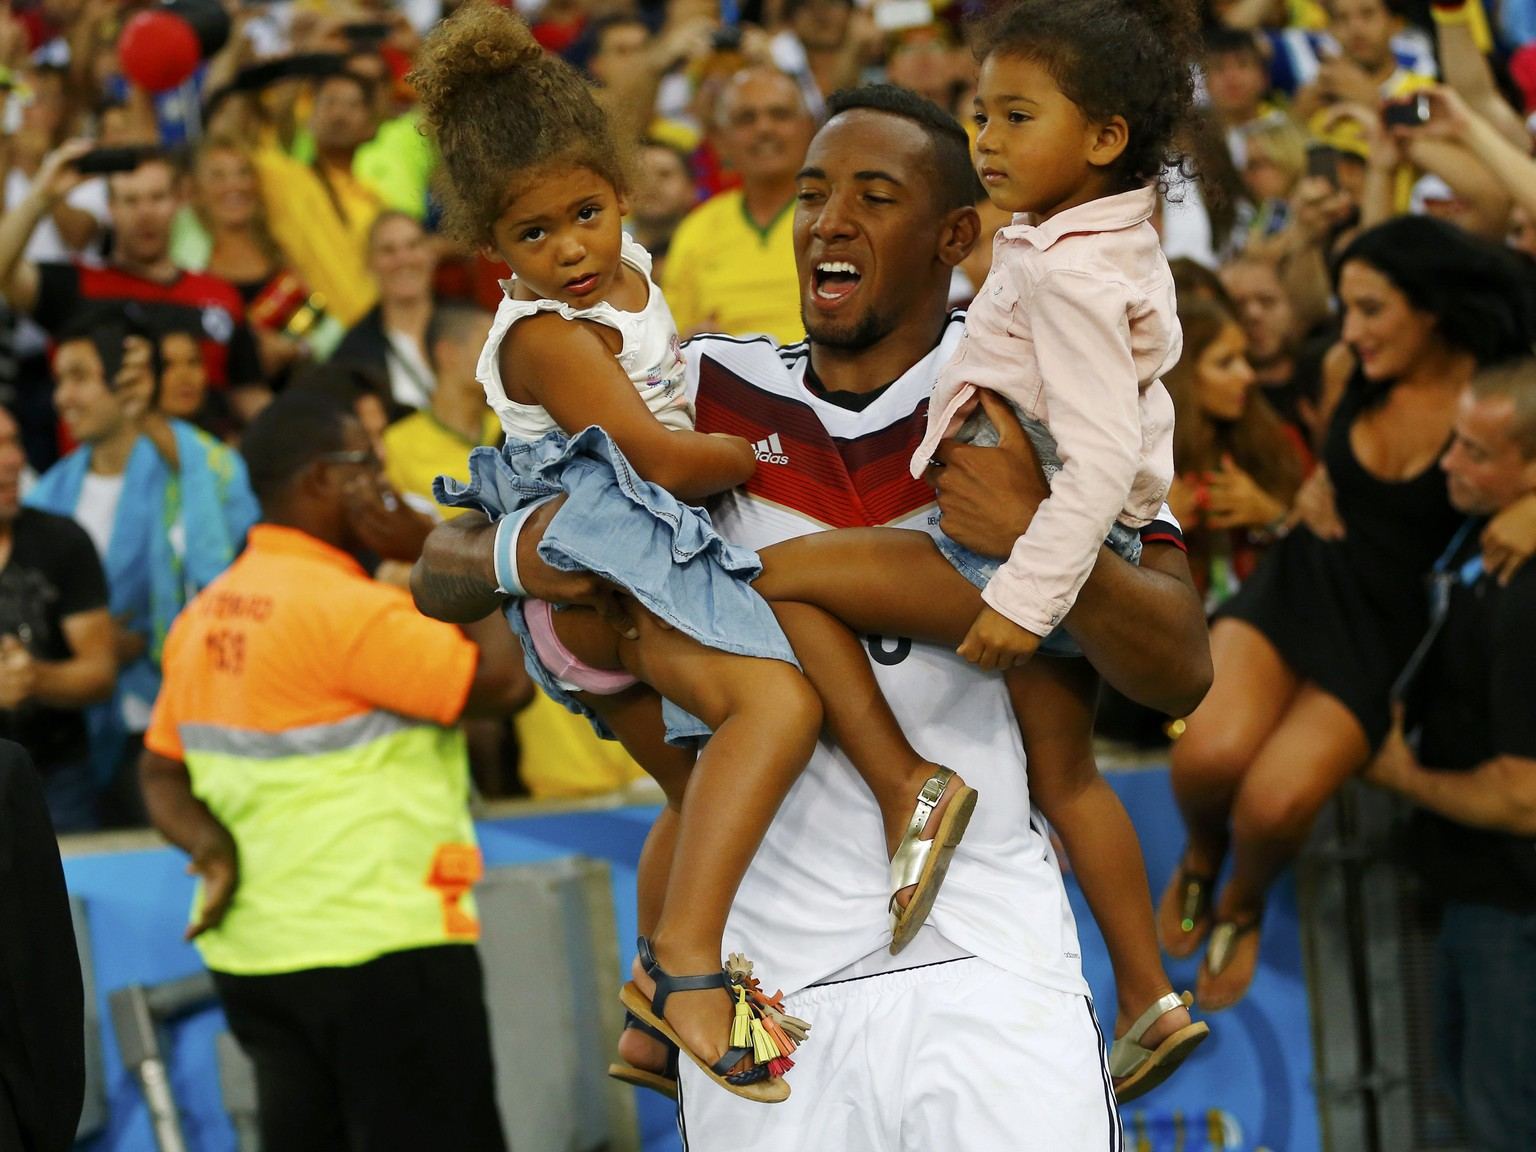 Germany's Jerome Boateng carries his children as he celebrates their win against Argentina in their 2014 World Cup final at the Maracana stadium in Rio de Janeiro July 13, 2014. REUTERS/Darren Staples (BRAZIL  - Tags: SOCCER SPORT WORLD CUP)